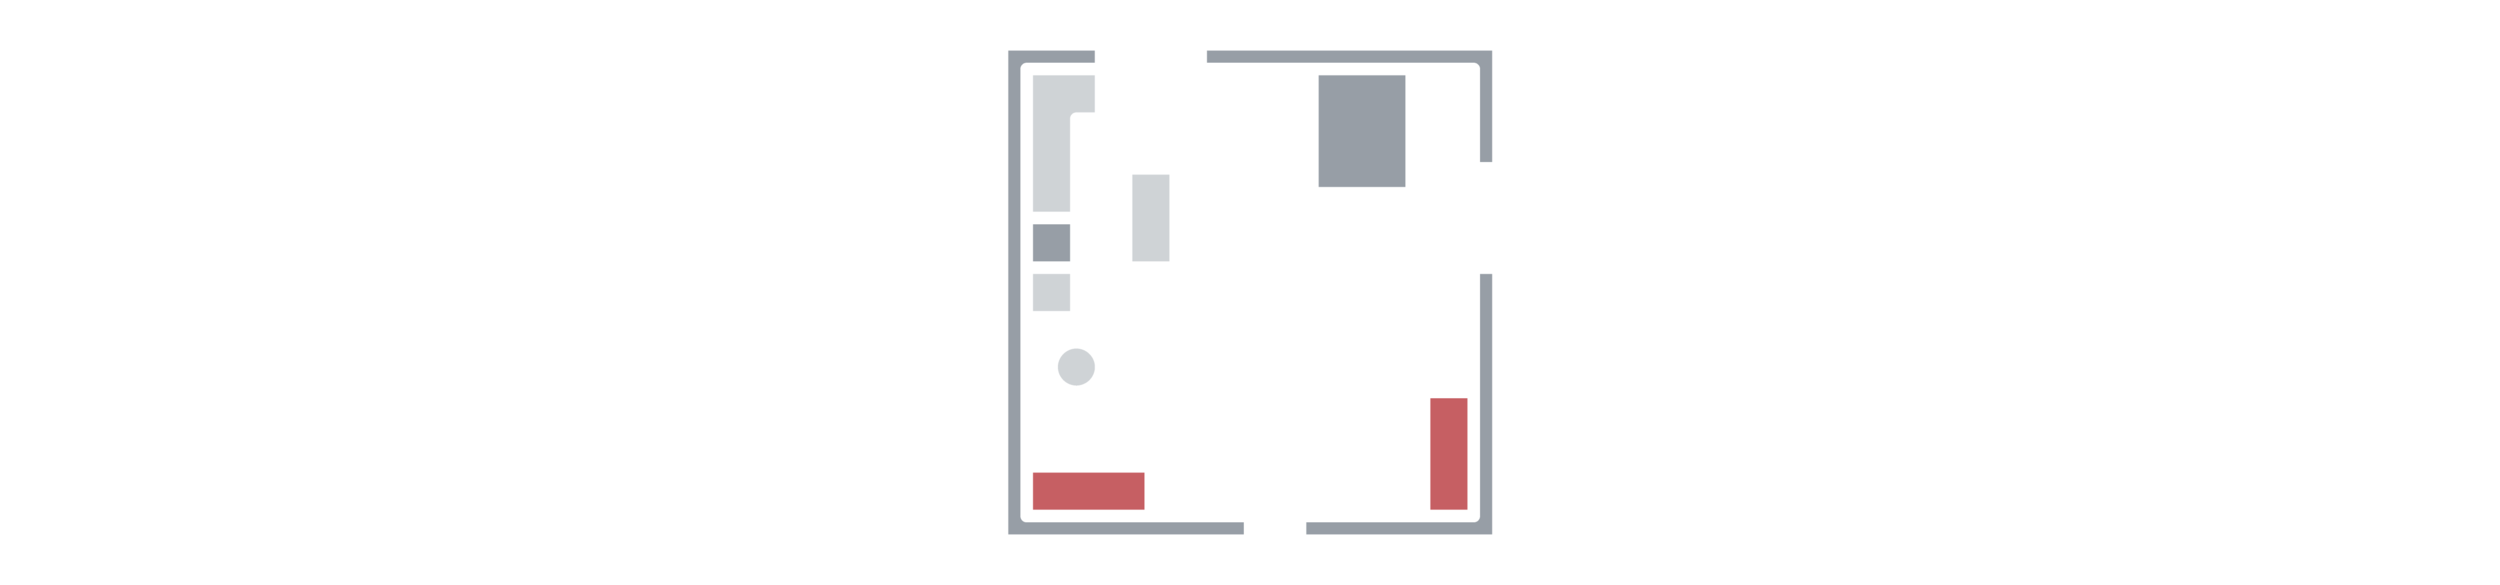 icon-design-services-white-lines.png